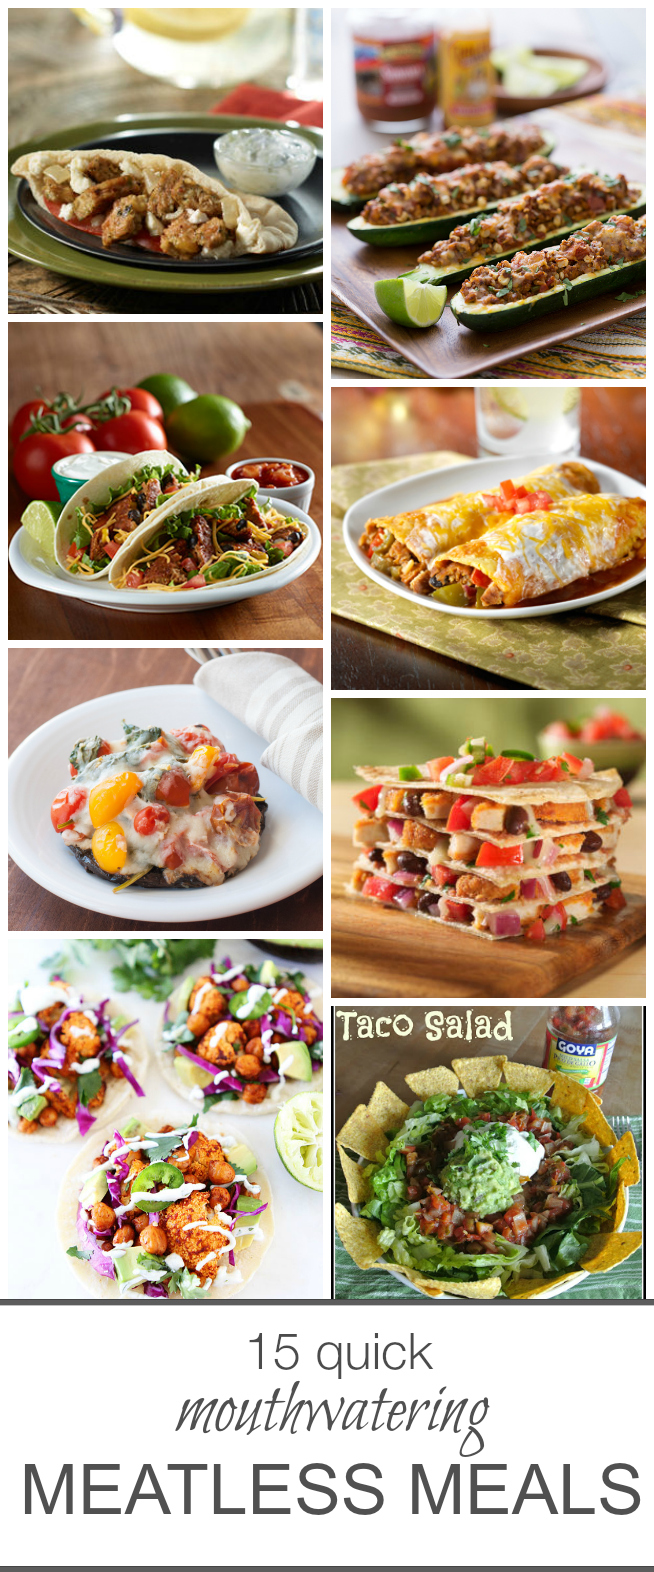 15 Quick Mouthwatering Meatless Meals